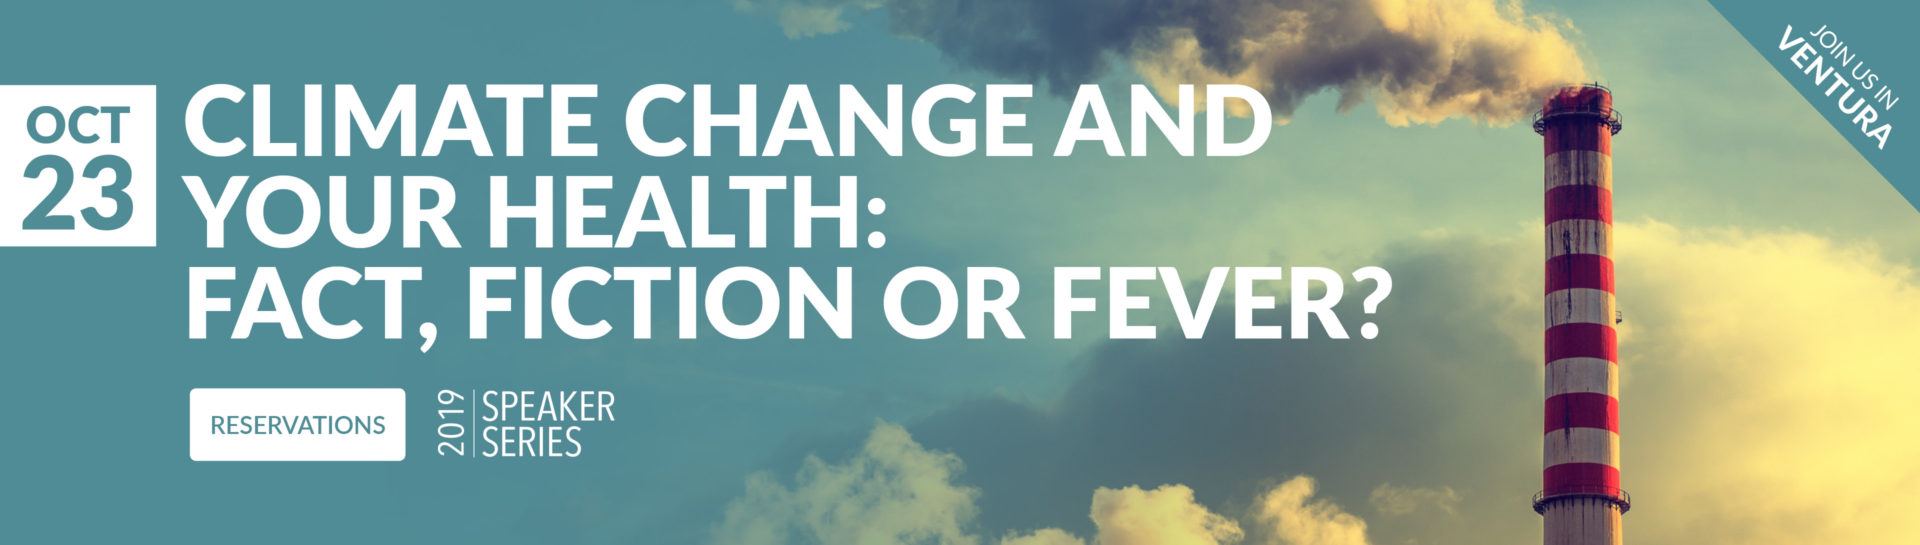 Climate change and your health: fact, fiction or fever?